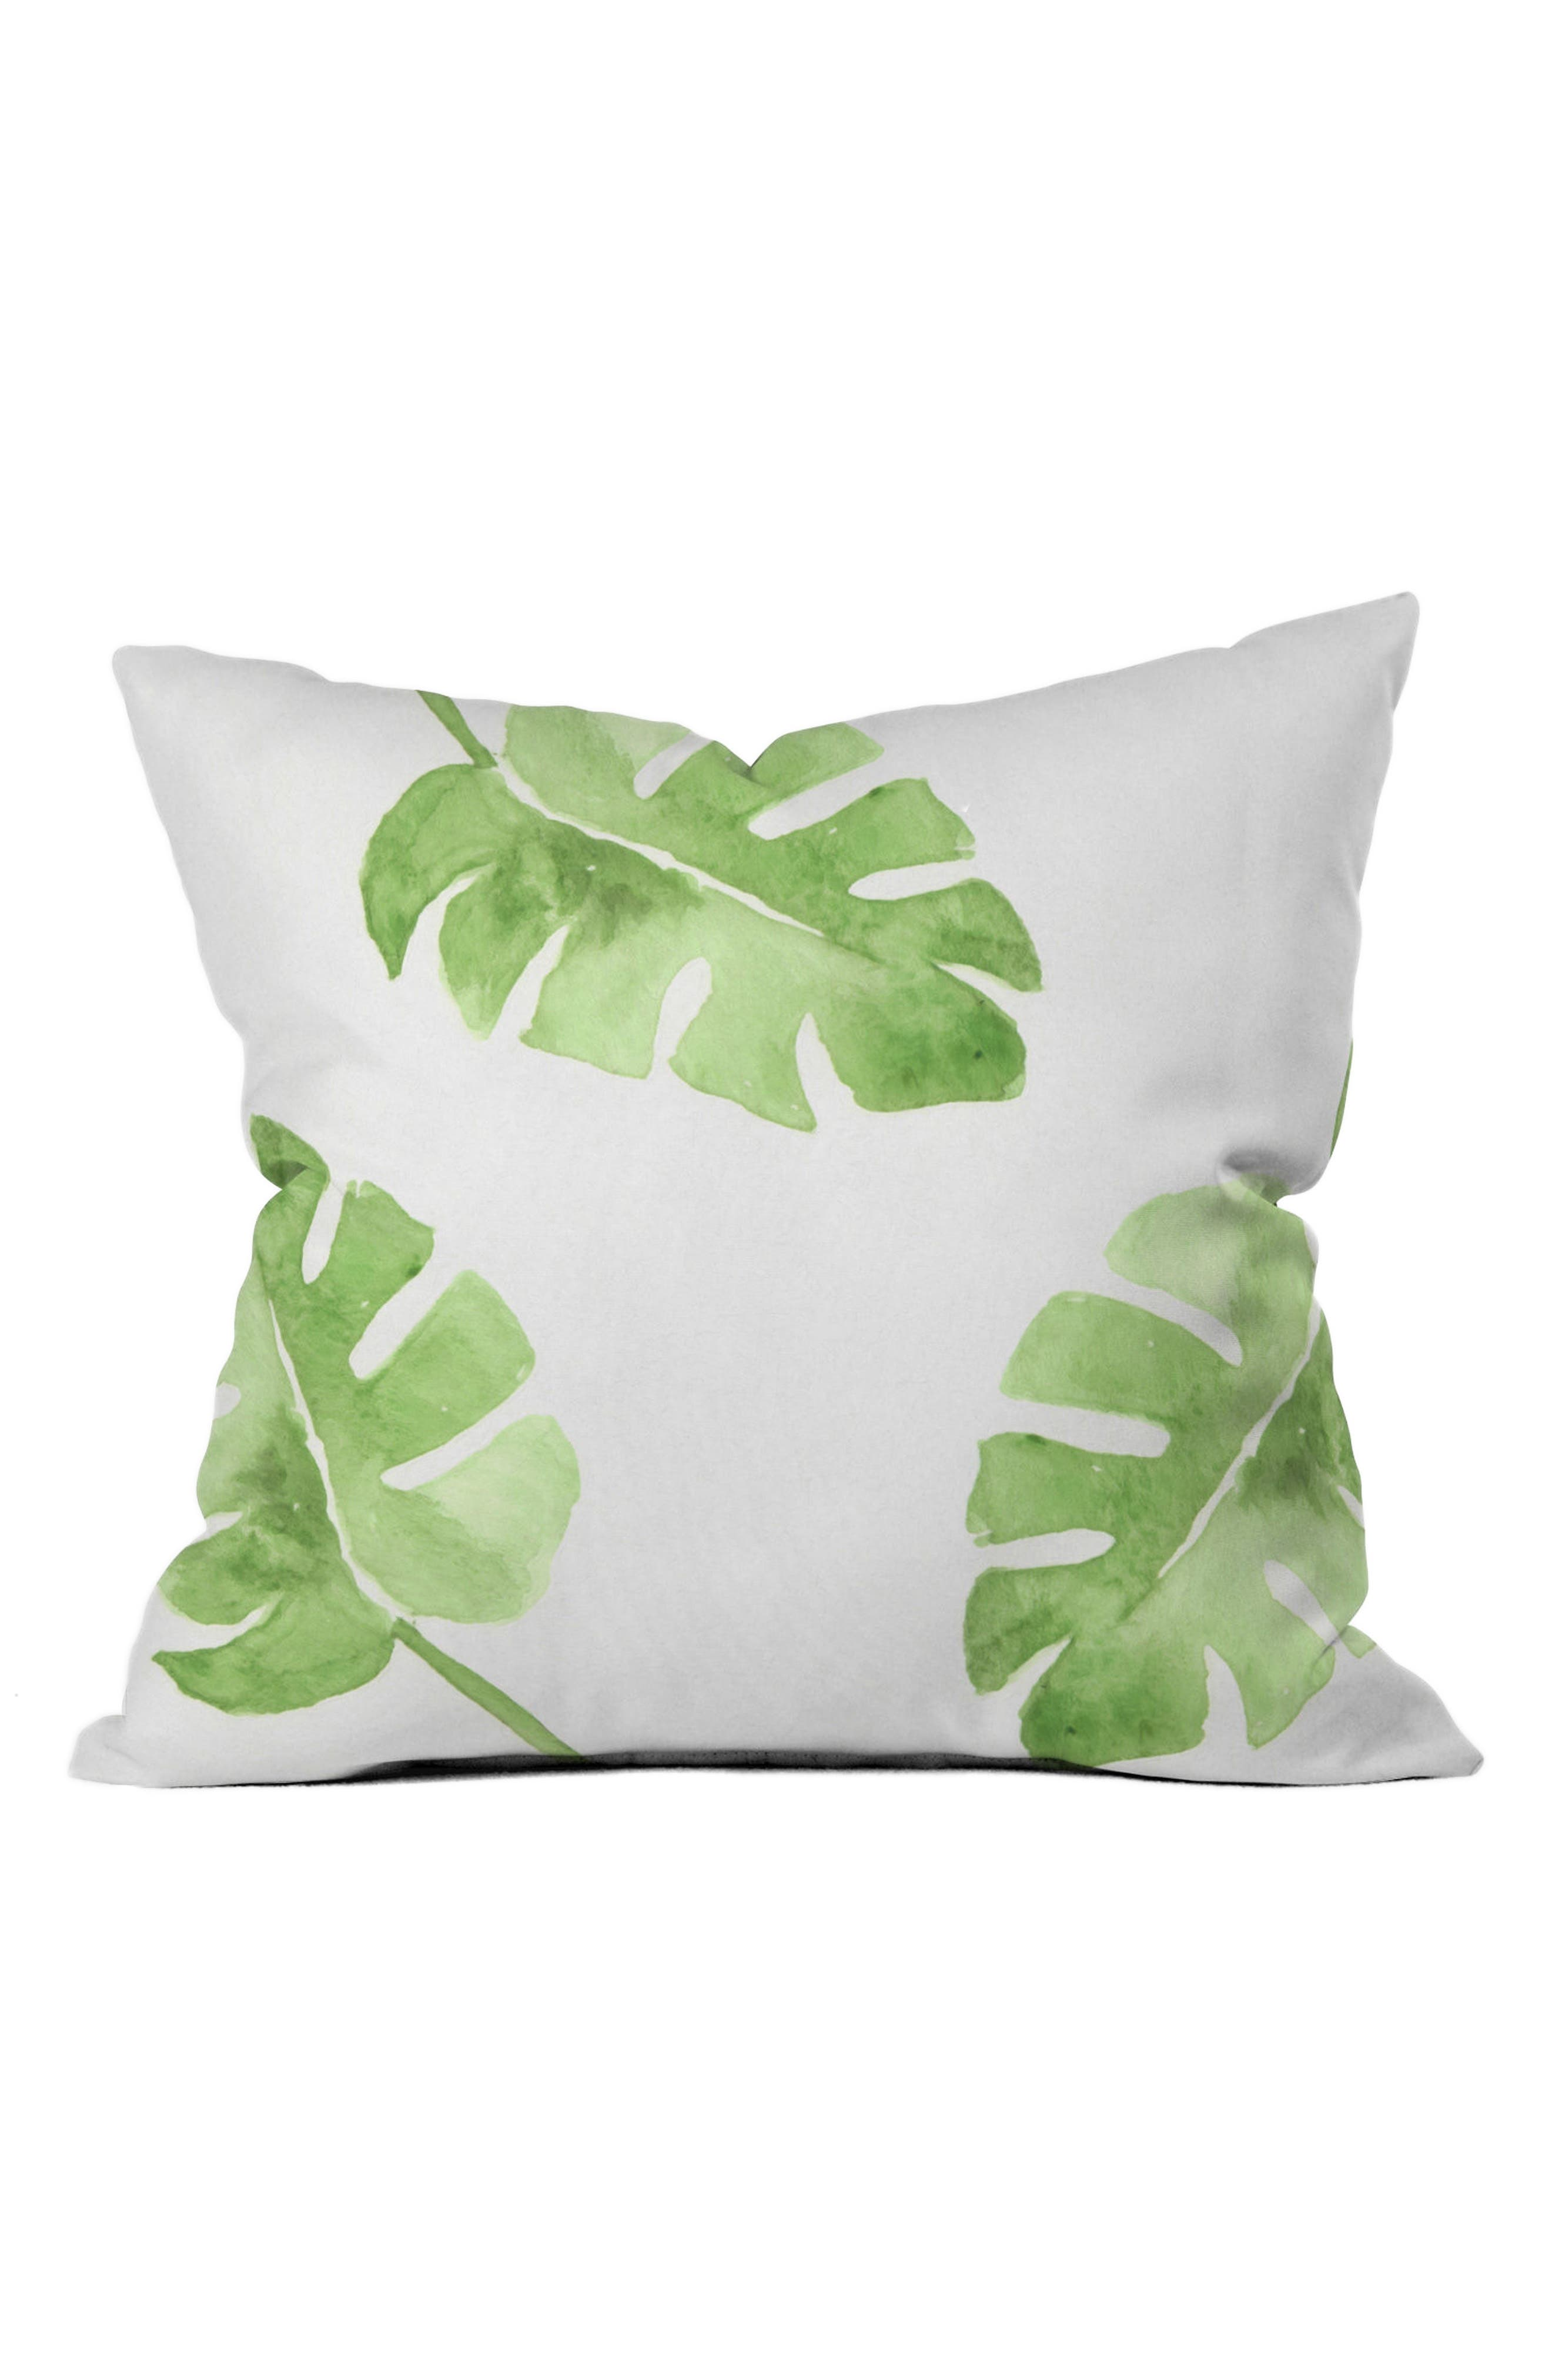 Main Image - DENY Designs Wonder Forest Pillow